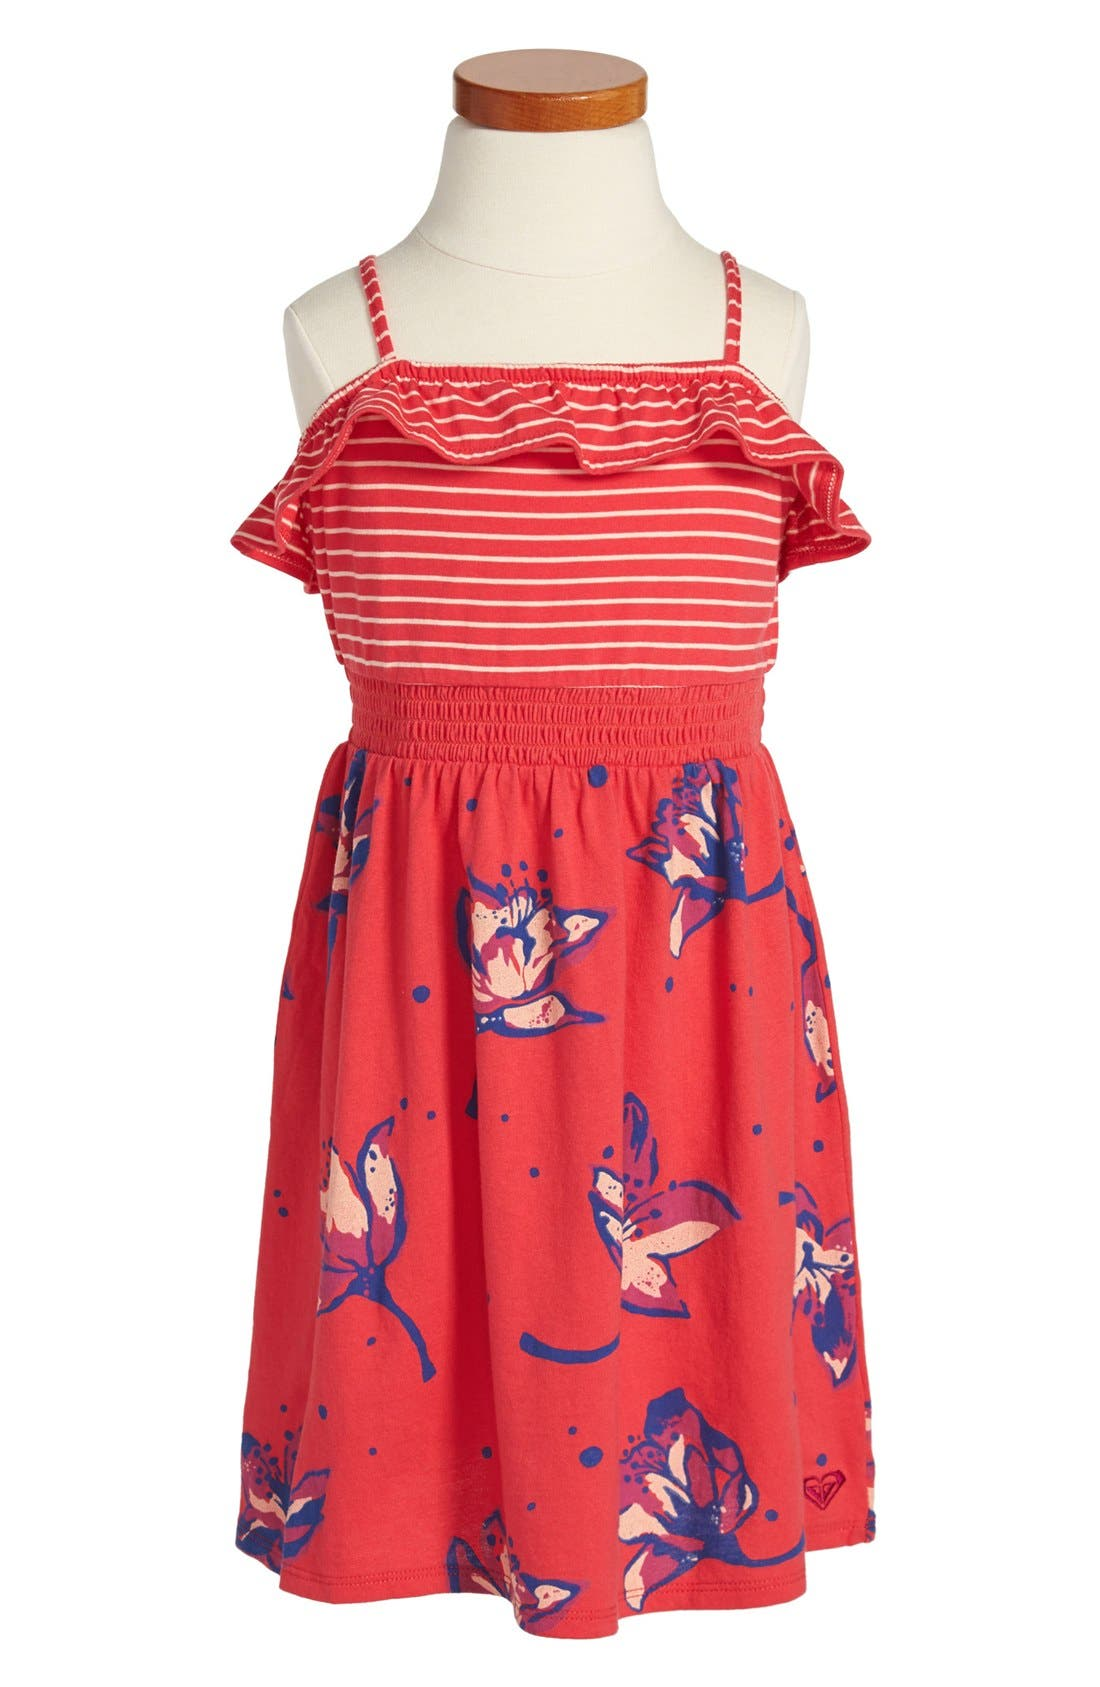 Main Image - Roxy 'Sweet Escape' Dress (Little Girls)